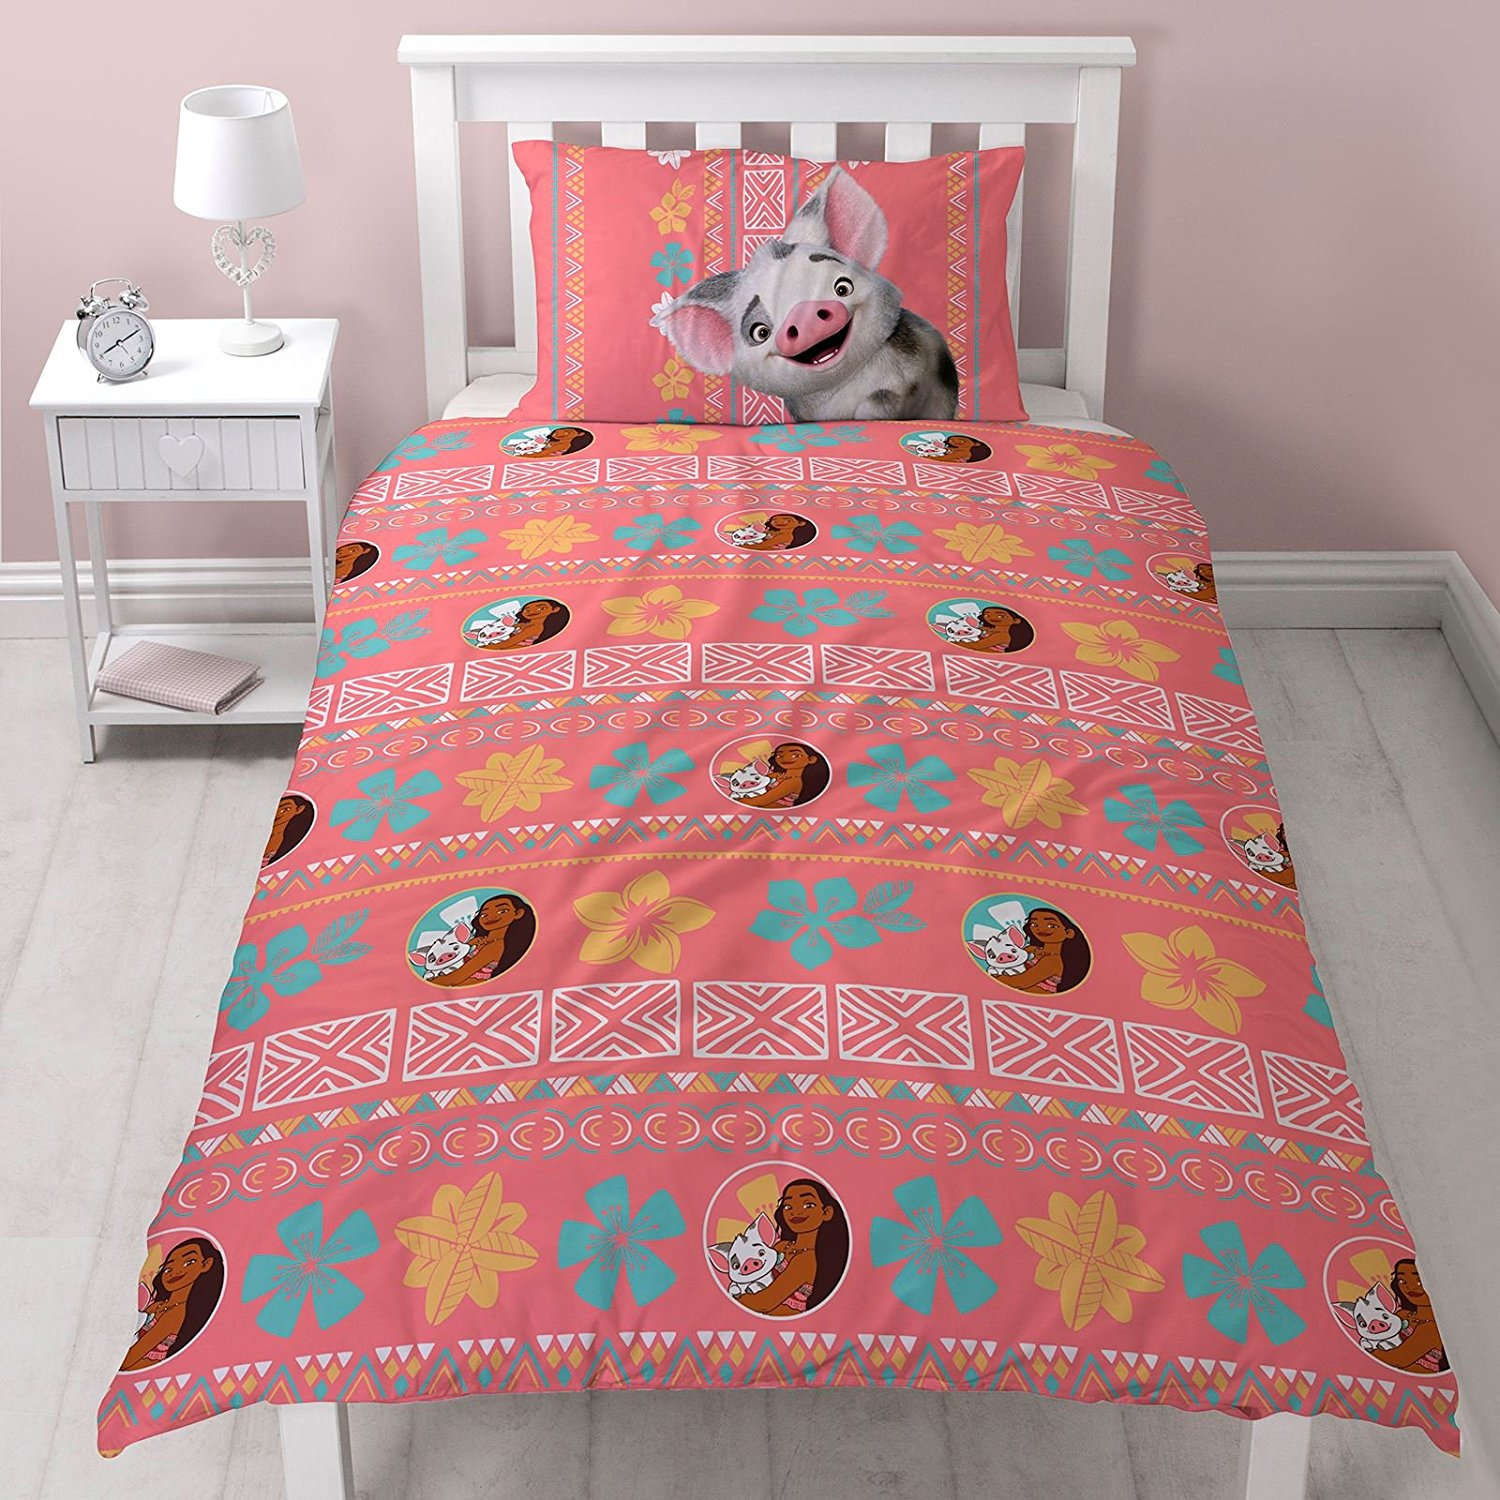 Thomas Paul Bedding Uk